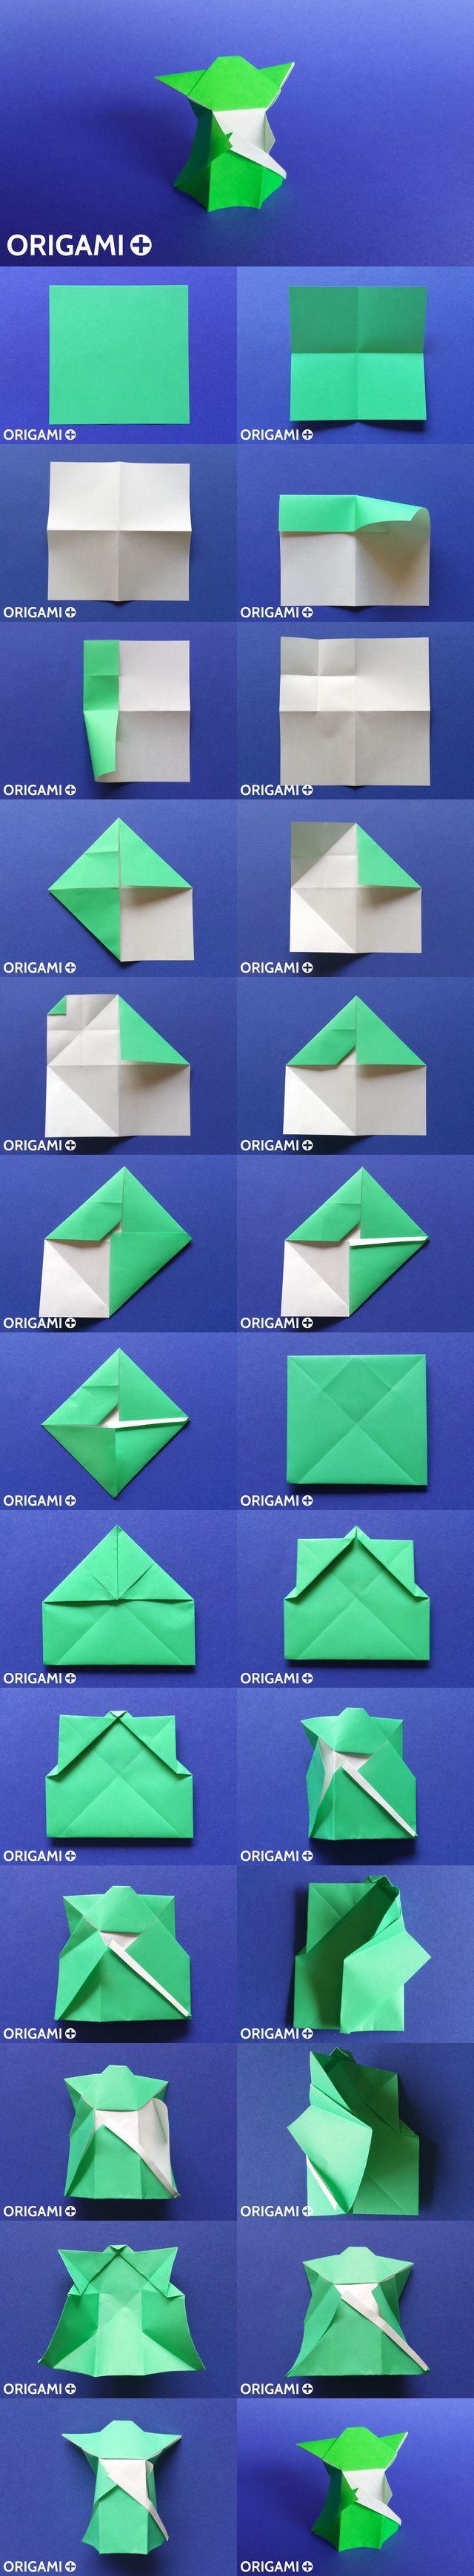 Origami Yoda tutorial. Star Wars origami.